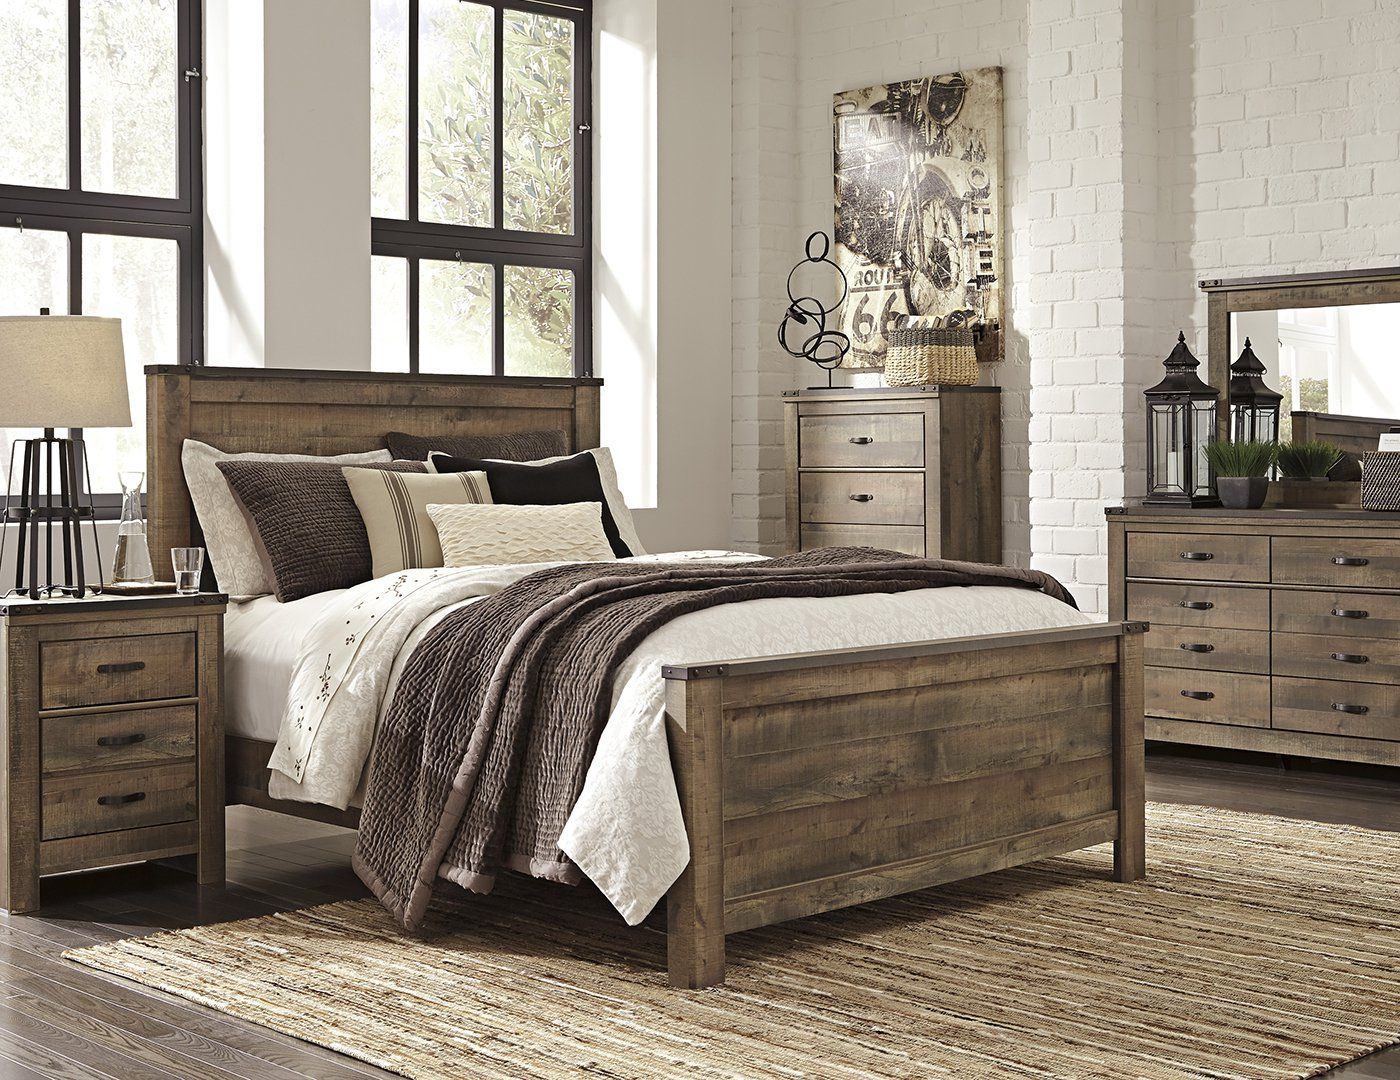 Trinell 5pc. King Bedroom Set King bedroom sets